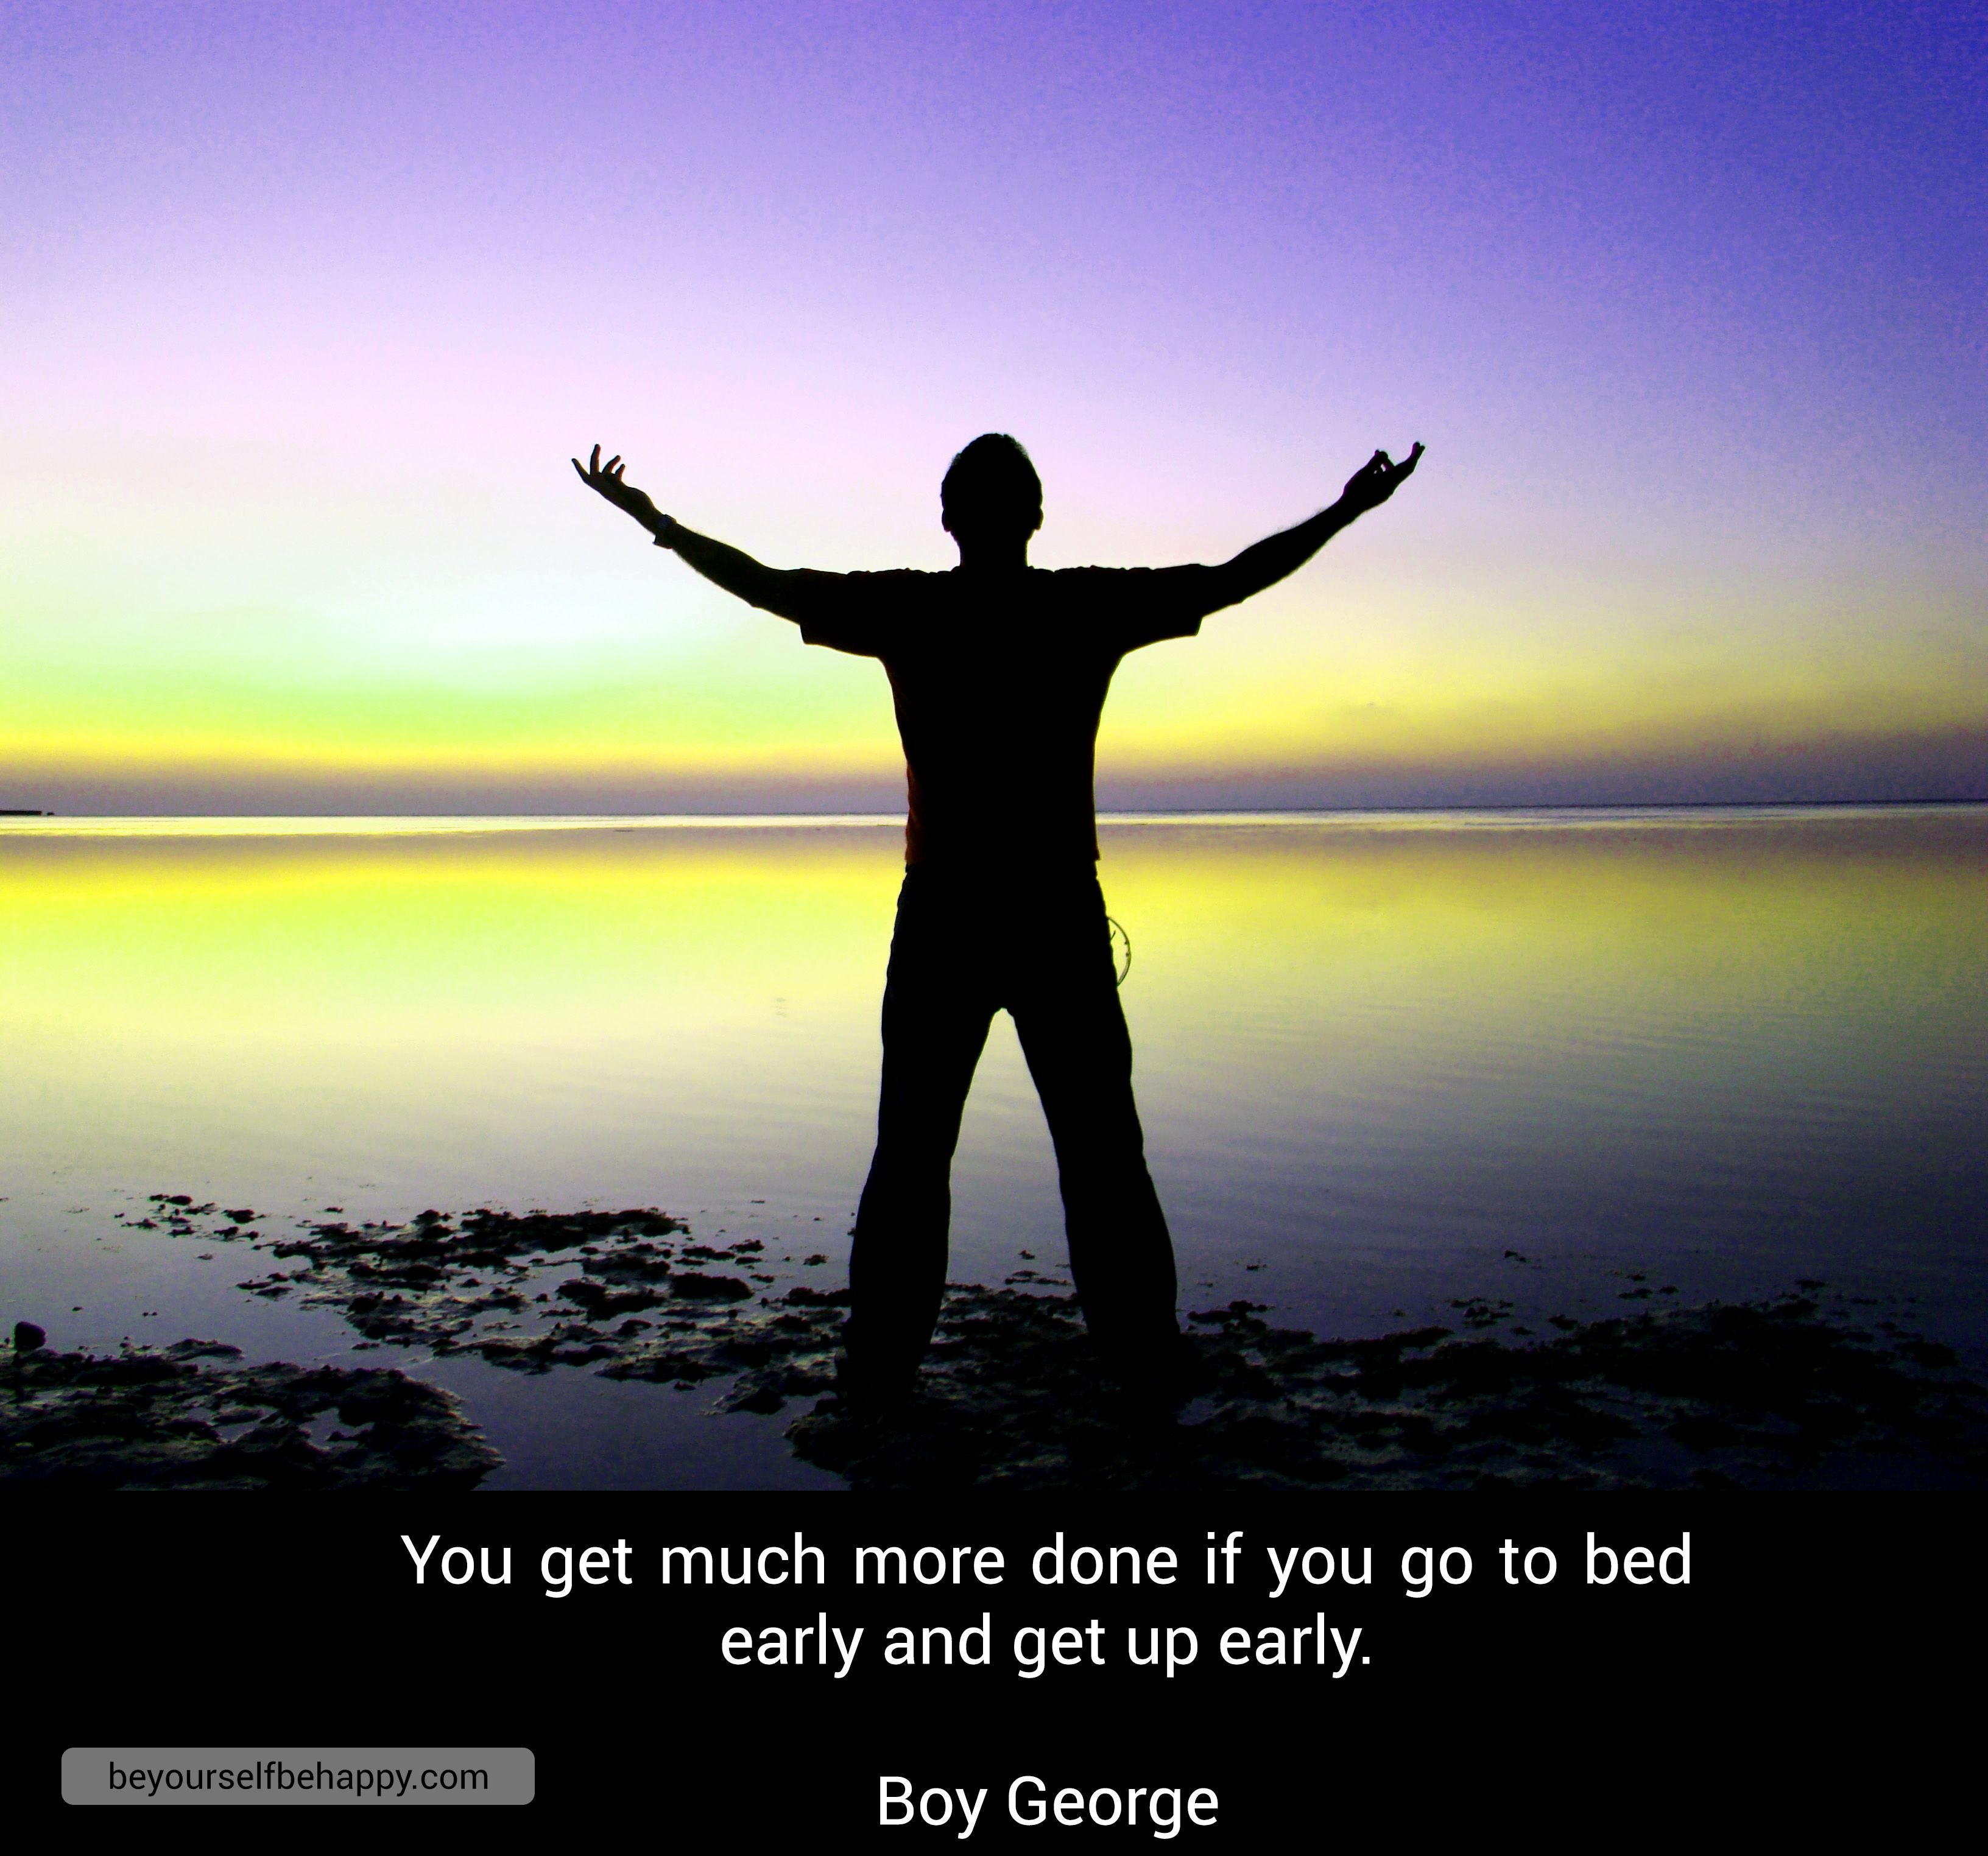 #quotes #motivational #beyourselfbehappy #getupearly #morning #fight Be Yourself Be Happy You get much more done if you go to bed early and get up early. Boy George